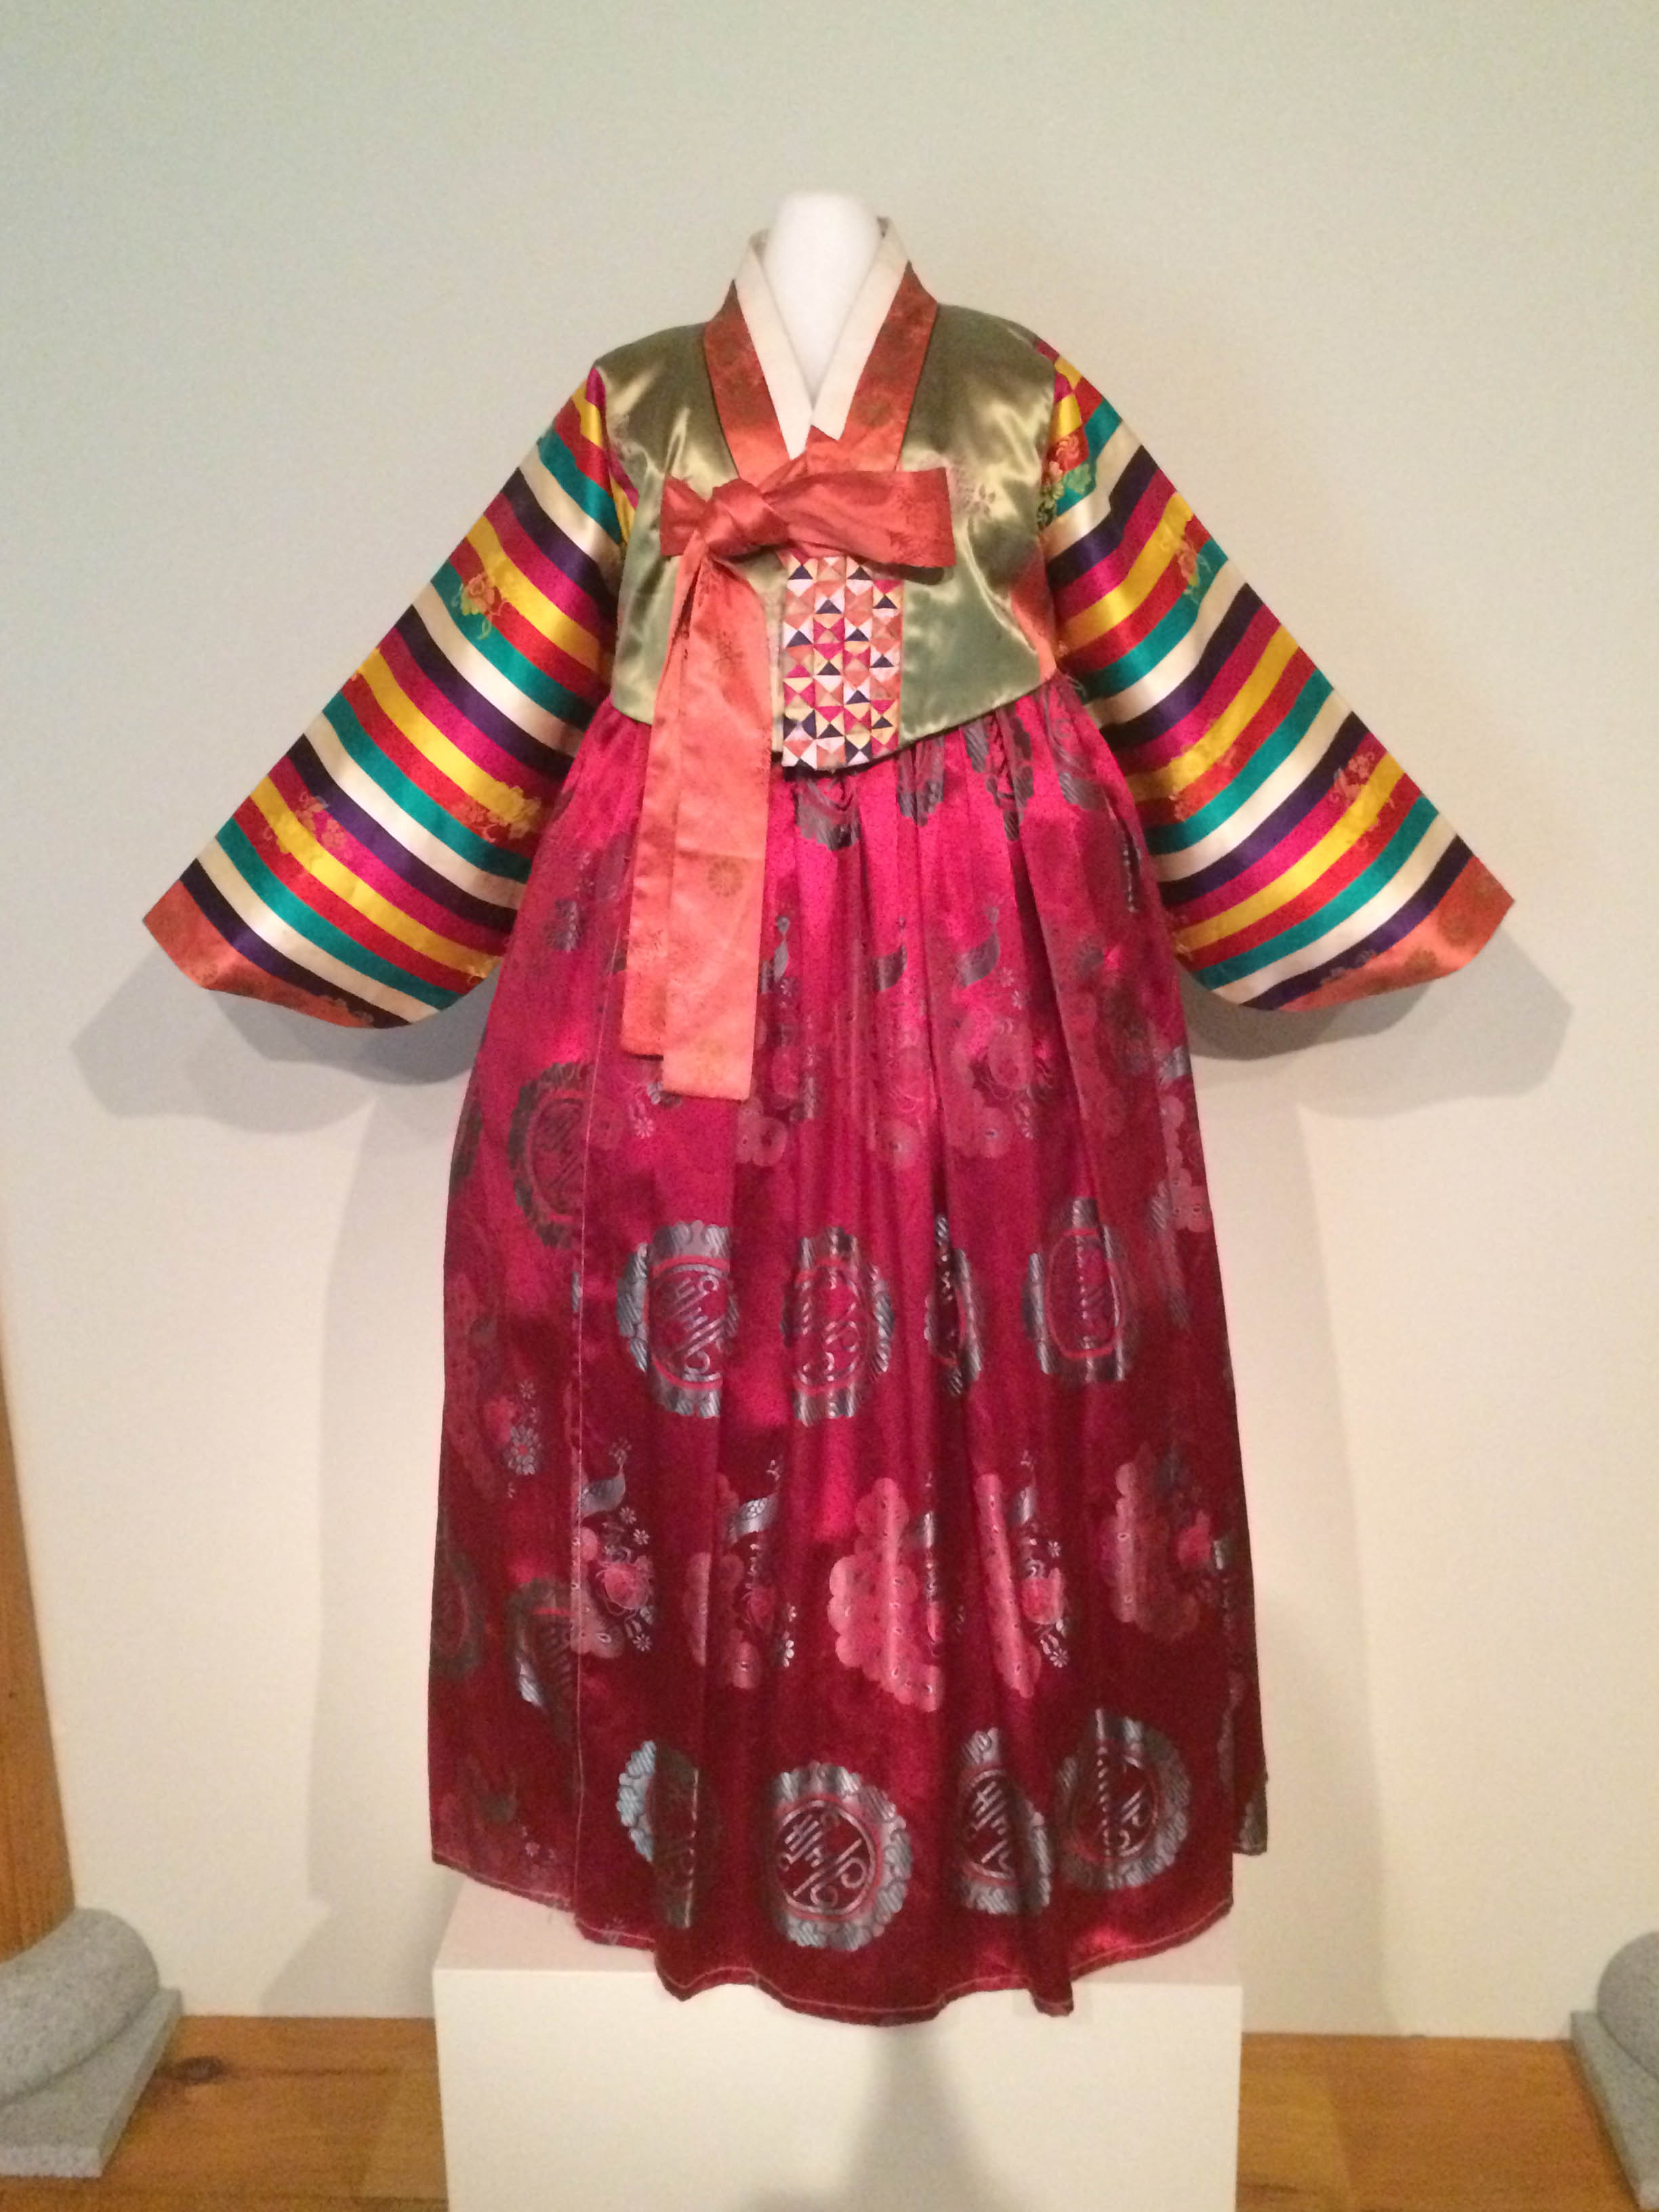 """Dress (Hanbok)"" (About 1960), Korea. Silk and cotton. Collection of the Art Fund, Inc. at the BMA. Gift of Mr. and Mrs. James E. Breece III. AFI919.2012.1-2."